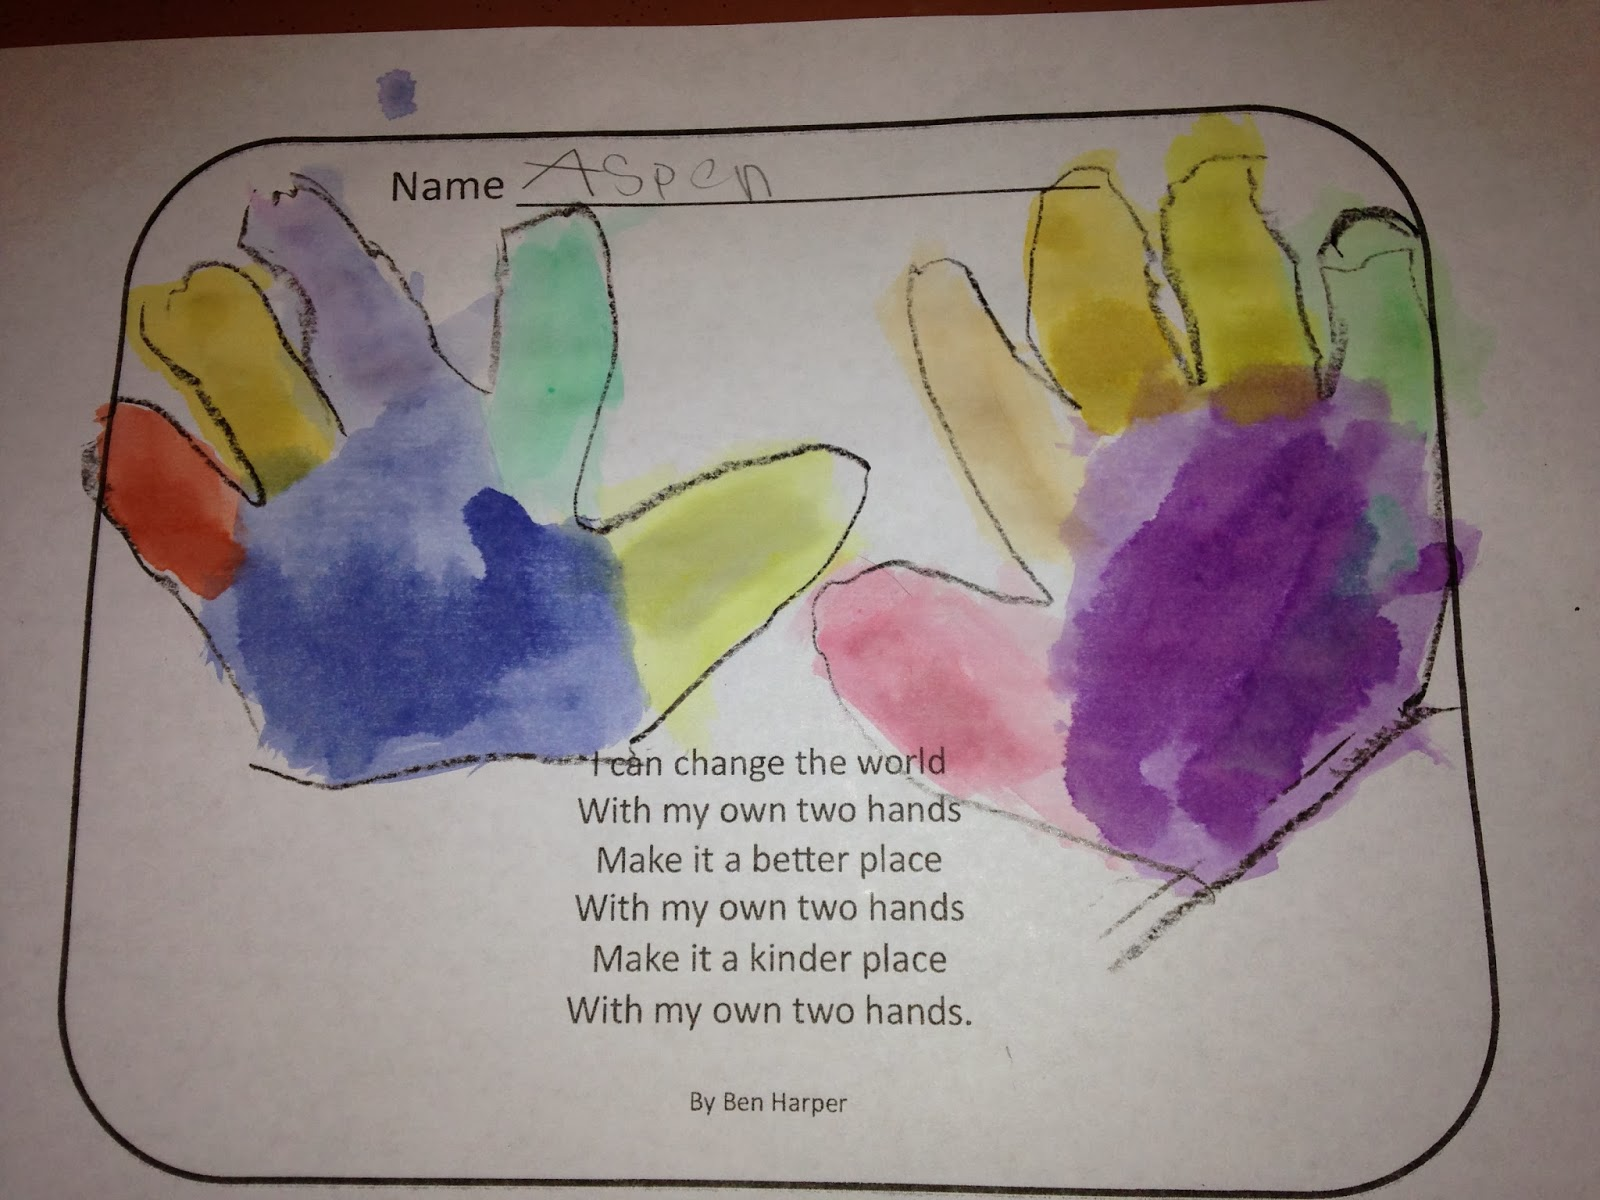 The Kindergarten Teacher With My Own Two Hands For Mlk Day